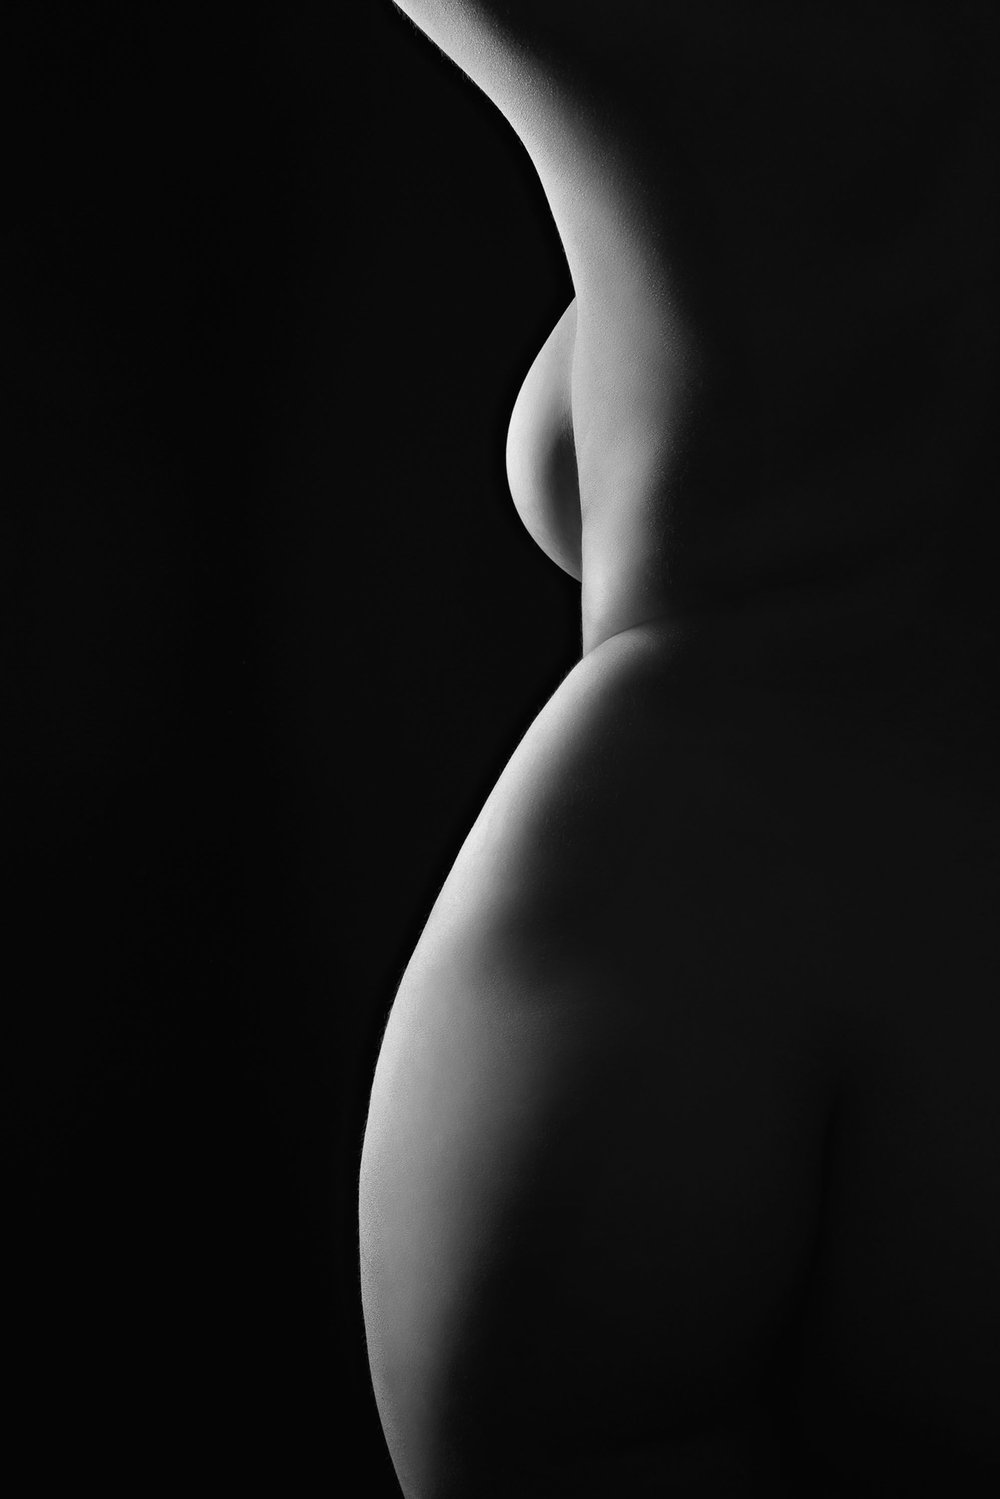 bodyscape of woman's torso from side black and white